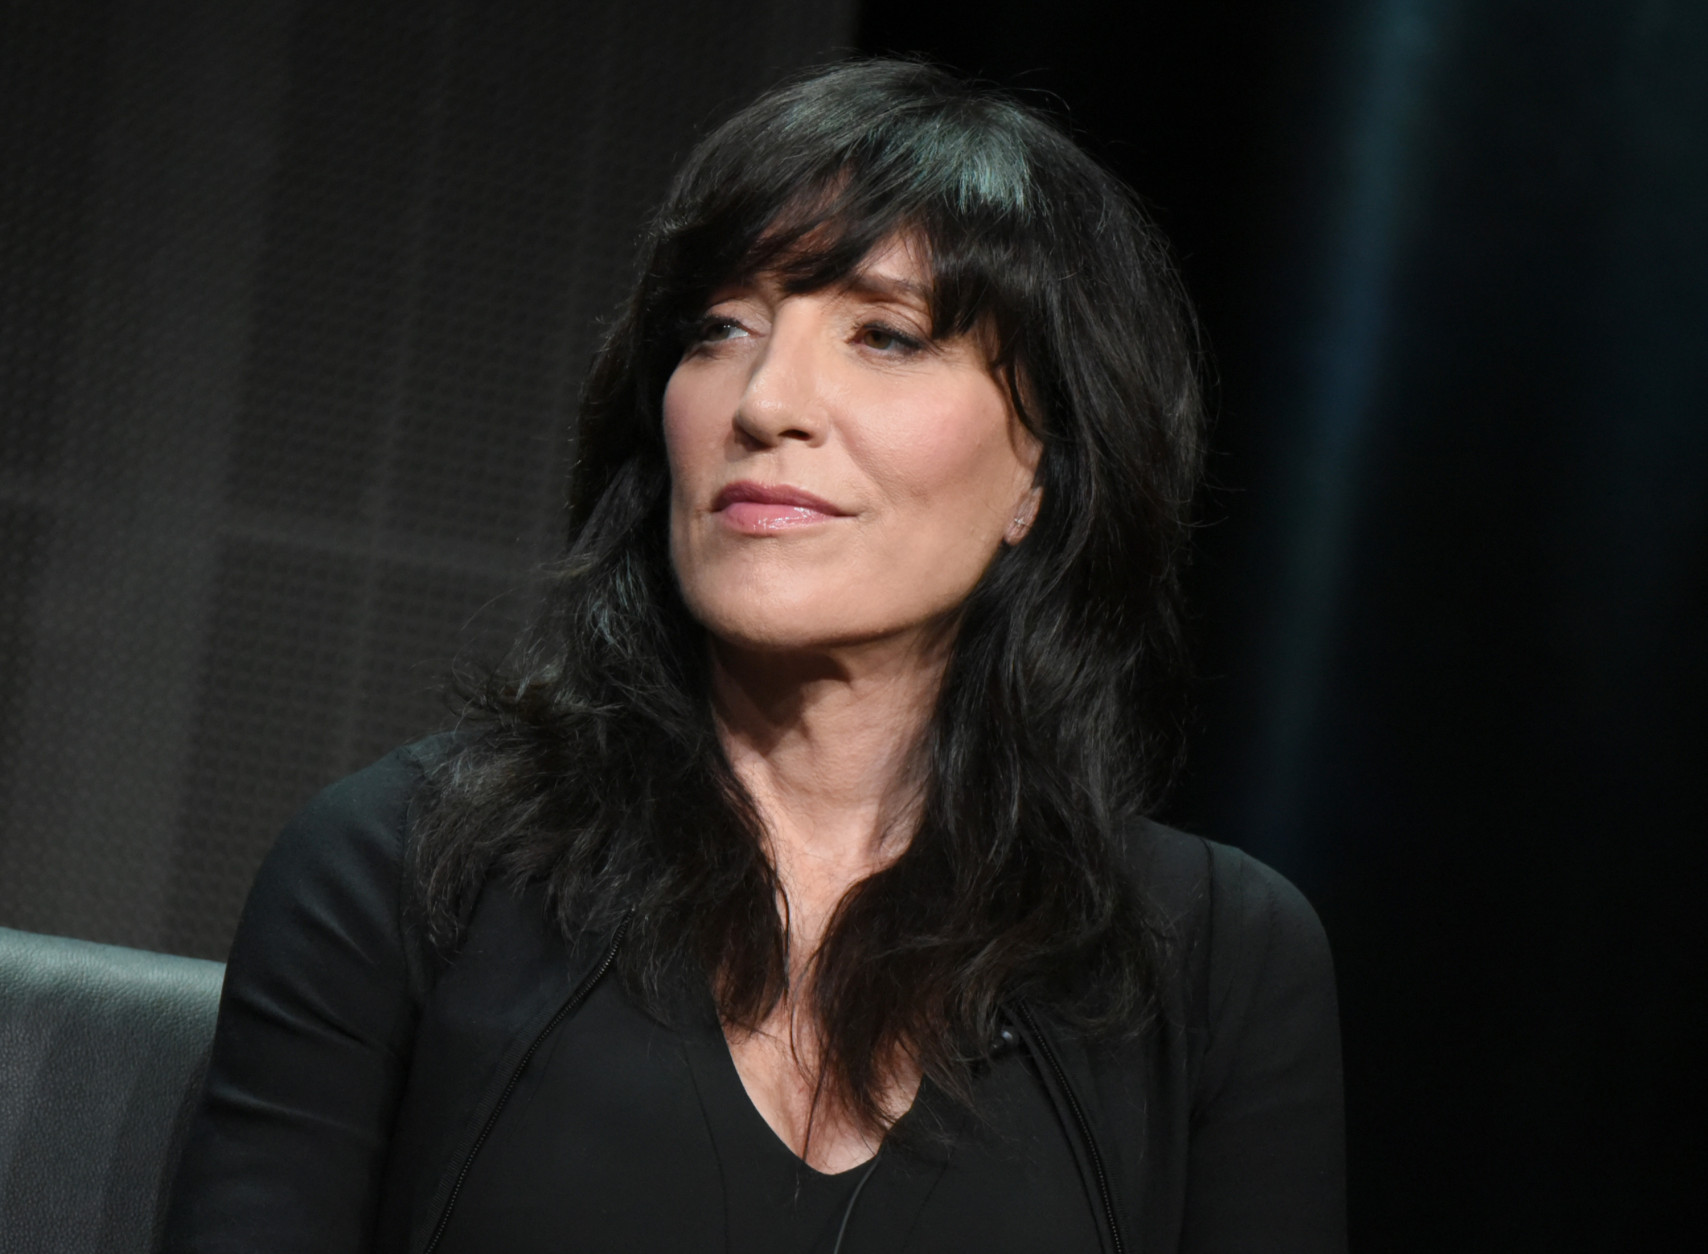 """Katey Sagal participates in """"The Bastard Executioner"""" panel at the FX Summer TCA Tour at the Beverly Hilton Hotel on Friday, Aug. 7, 2015, in Beverly Hills, Calif. (Photo by Richard Shotwell/Invision/AP)"""